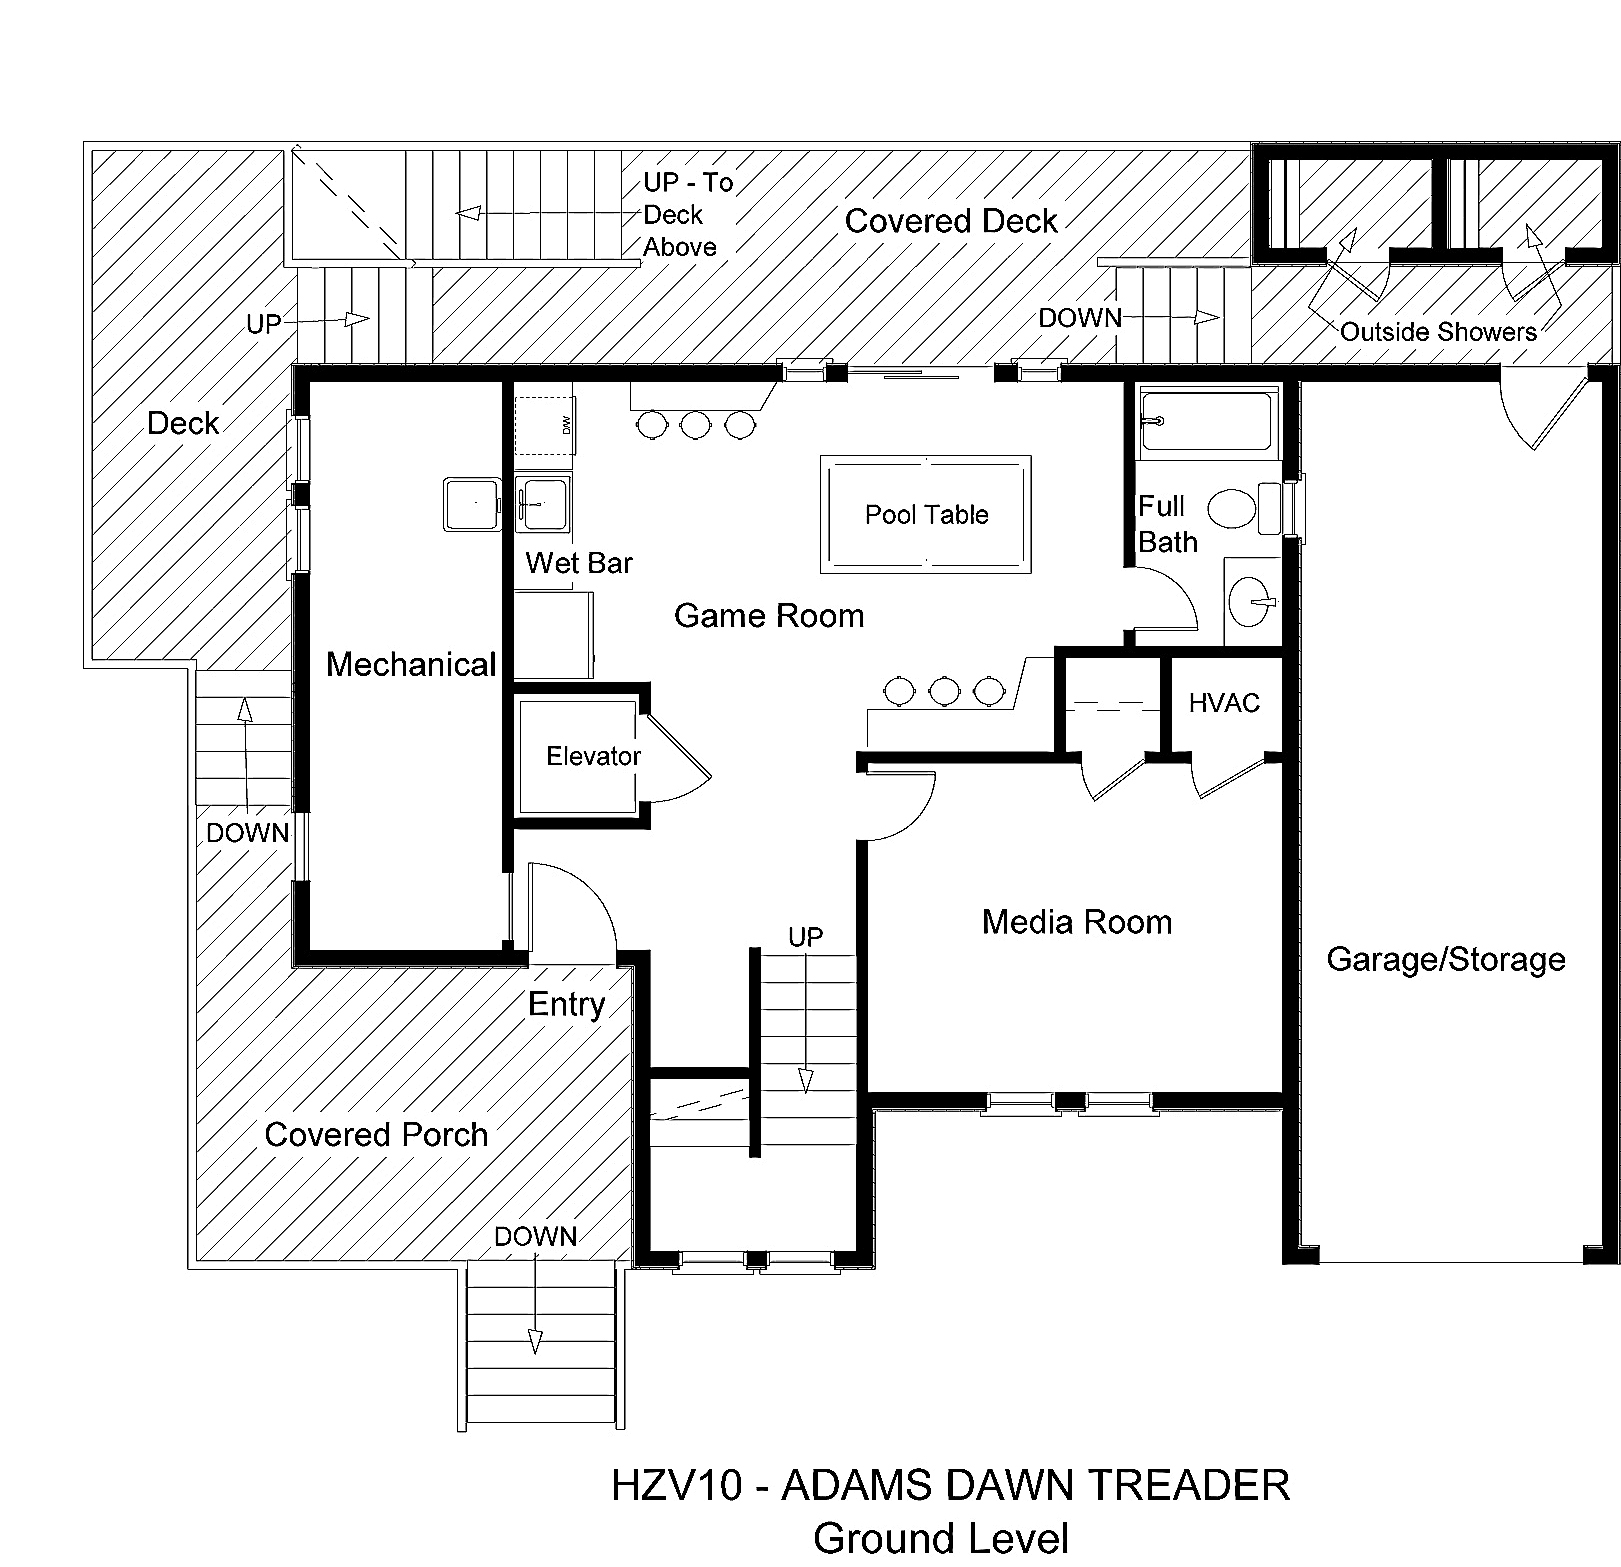 HZV10 Adams Dawn Treader - Floorplan Level 1